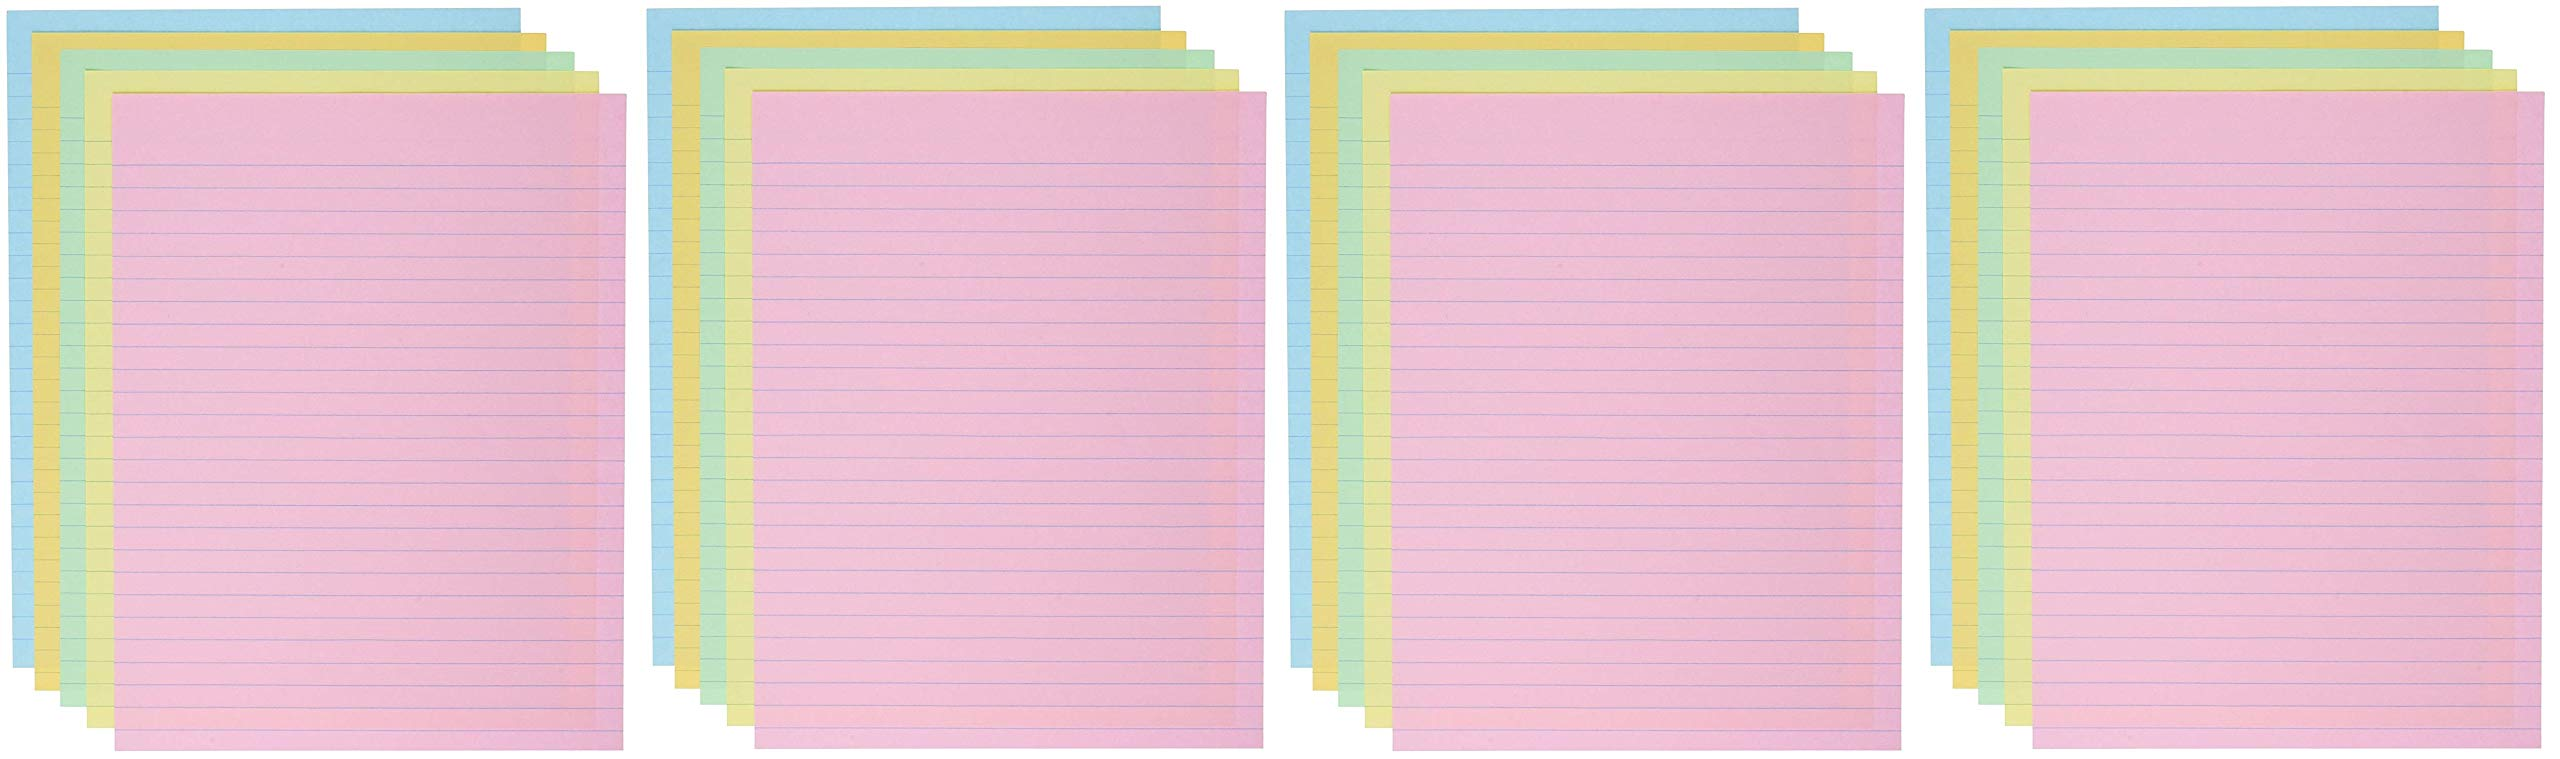 School Smart Ruled Exhibit Paper, 8-1/2 x 11 Inches, Assorted Colors (4 X Pack of 500)